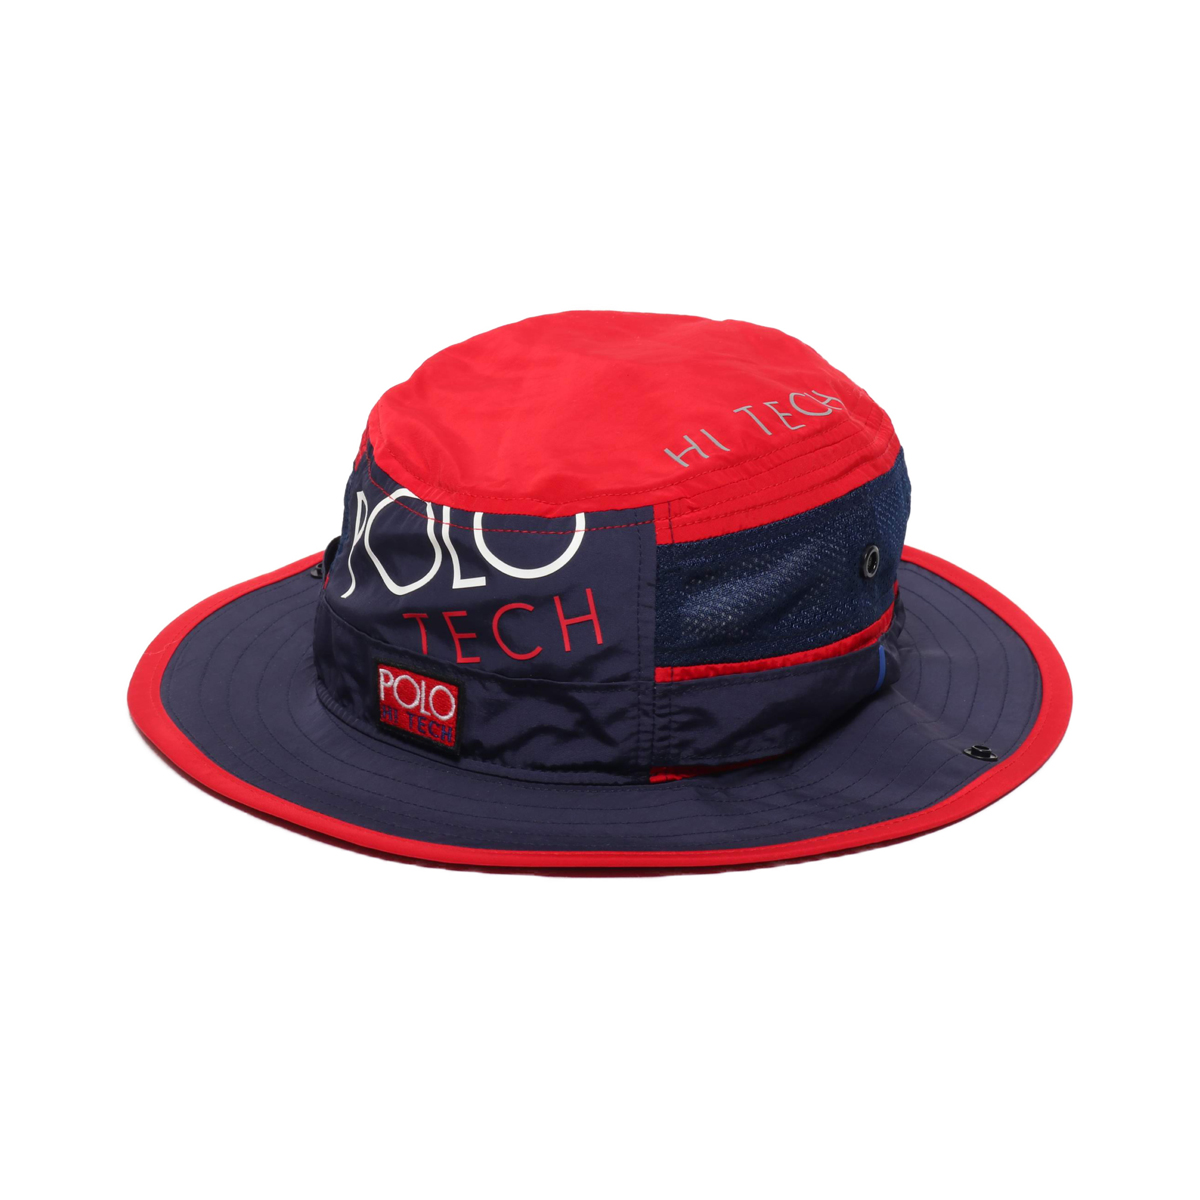 POLO RALPH LAUREN HITECHBOONEY-HAT(ポロ ラルフローレン ハイテック ブーニー ハット)RED MULTI【メンズ ハット】18HO-I